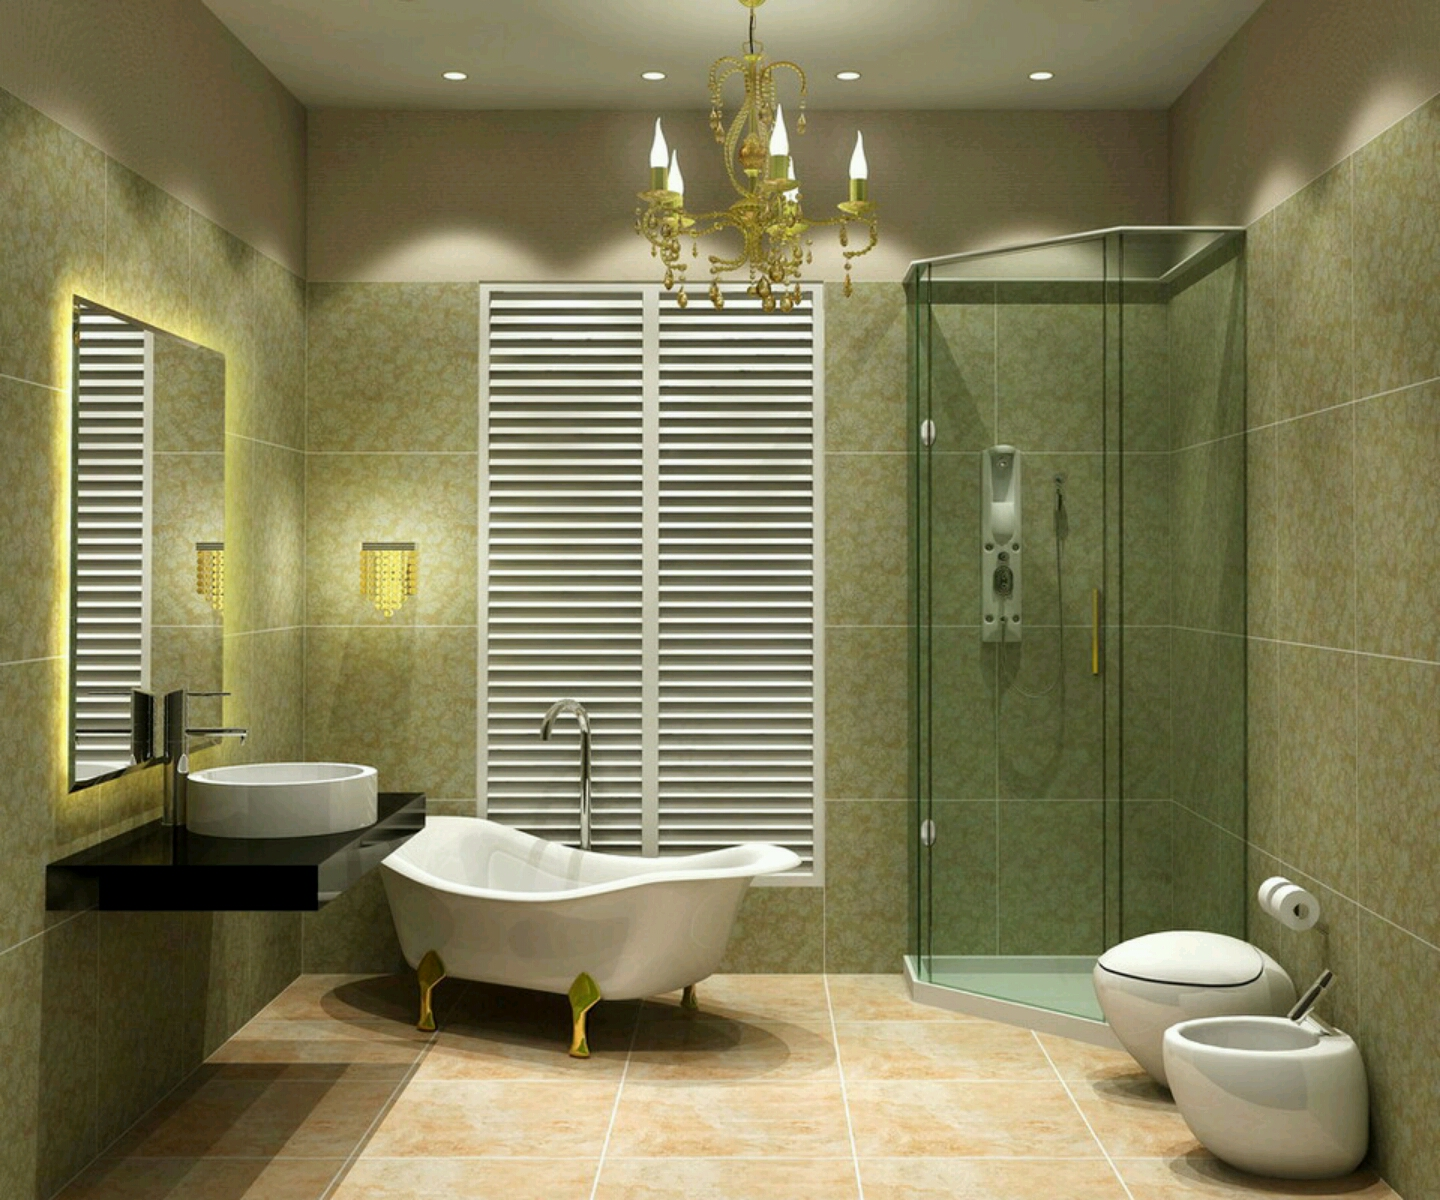 top small bathroom designs bathrooms best designs ideas modern bathrooms best designs ideas